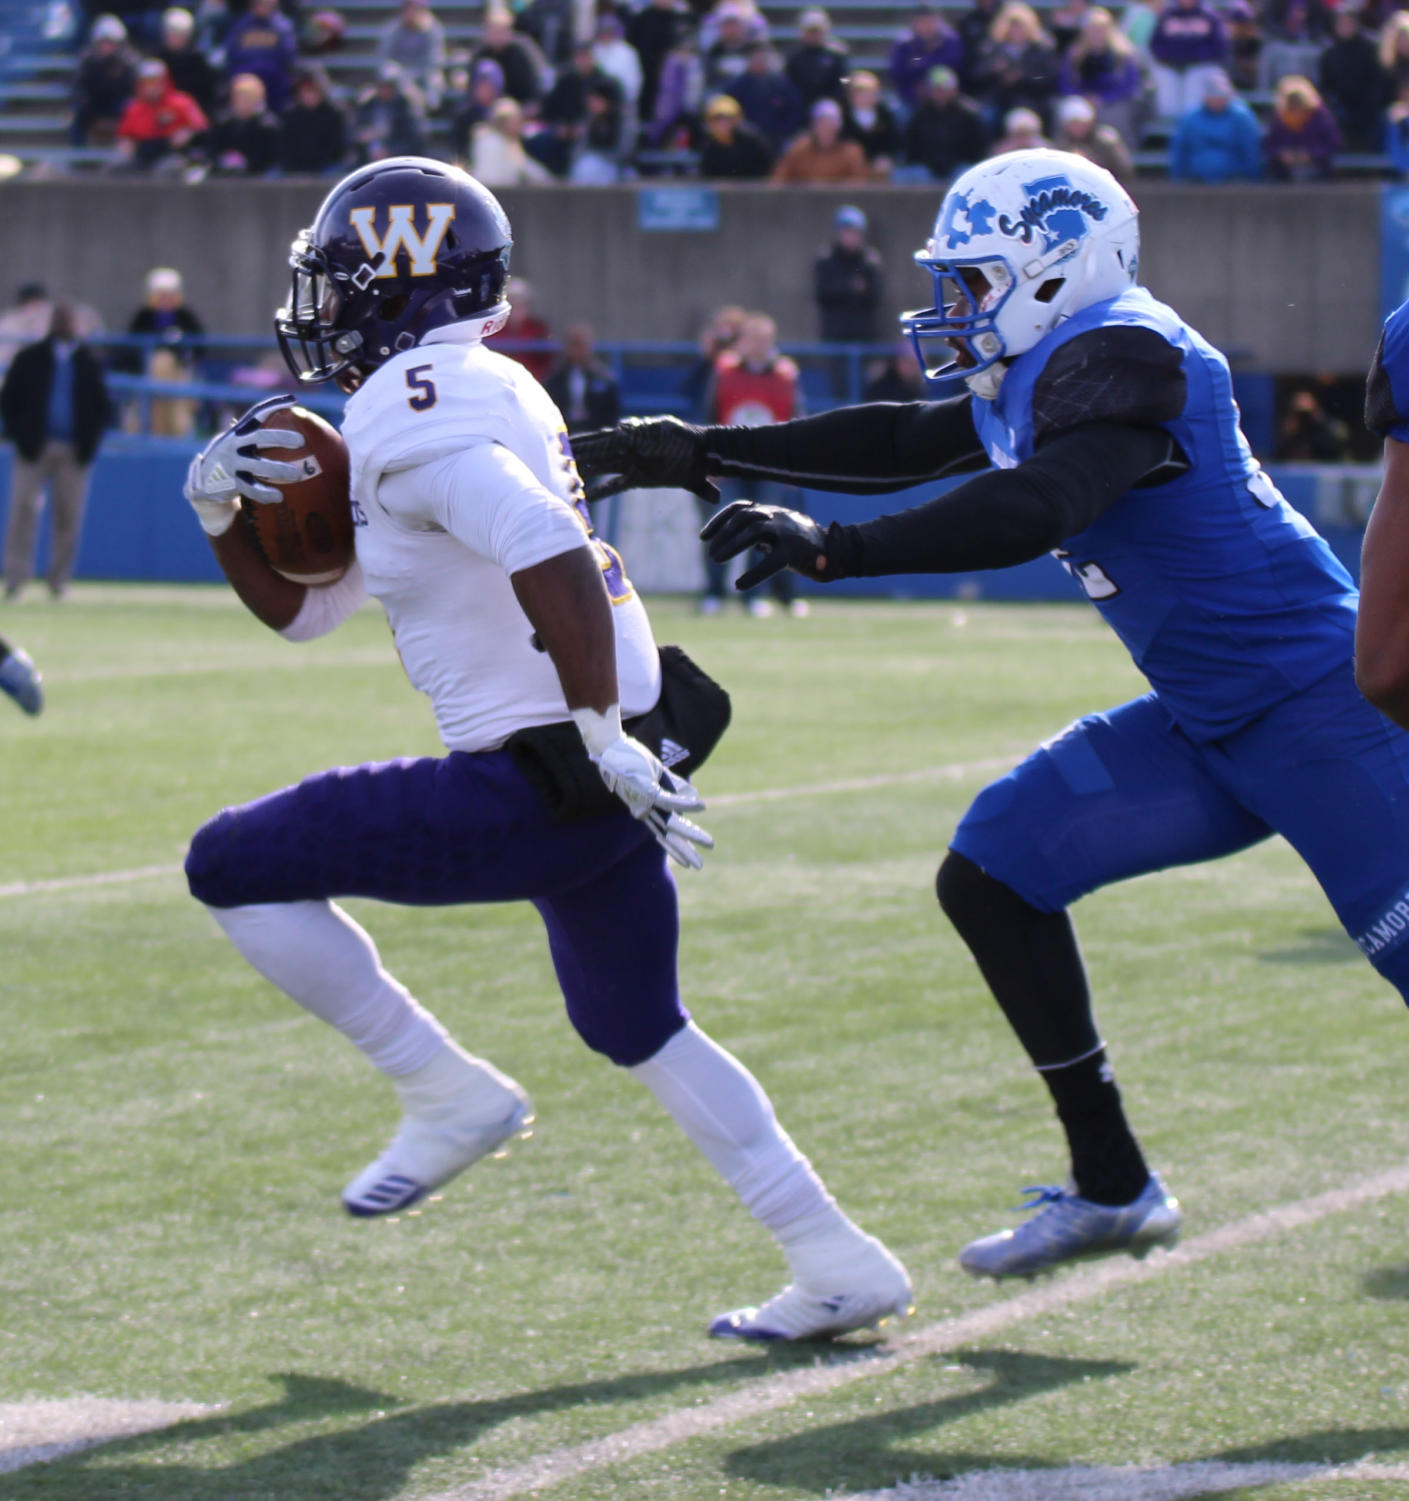 Steve McShane weaves through Indiana State University defenders on his way to a touchdown.